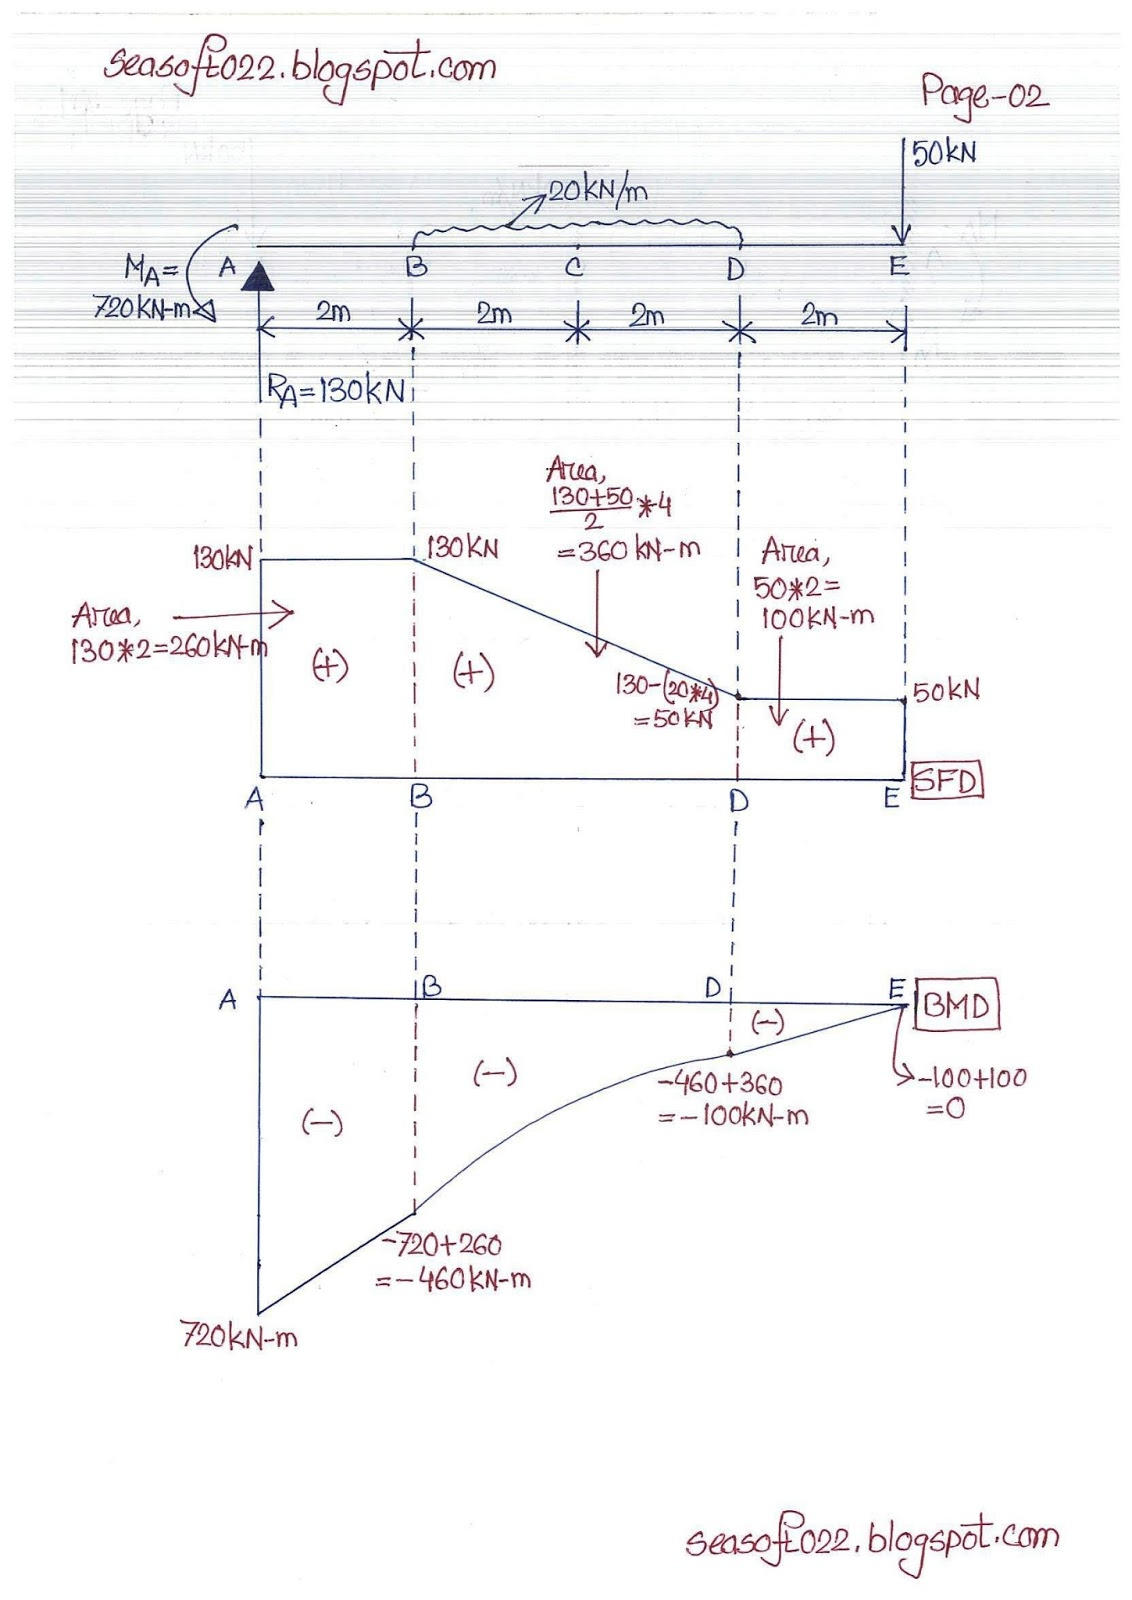 Sea Soft And Design Consultants Shear Force Bending Moment Sfd Bmd Diagram Example 04 Page 02 Of